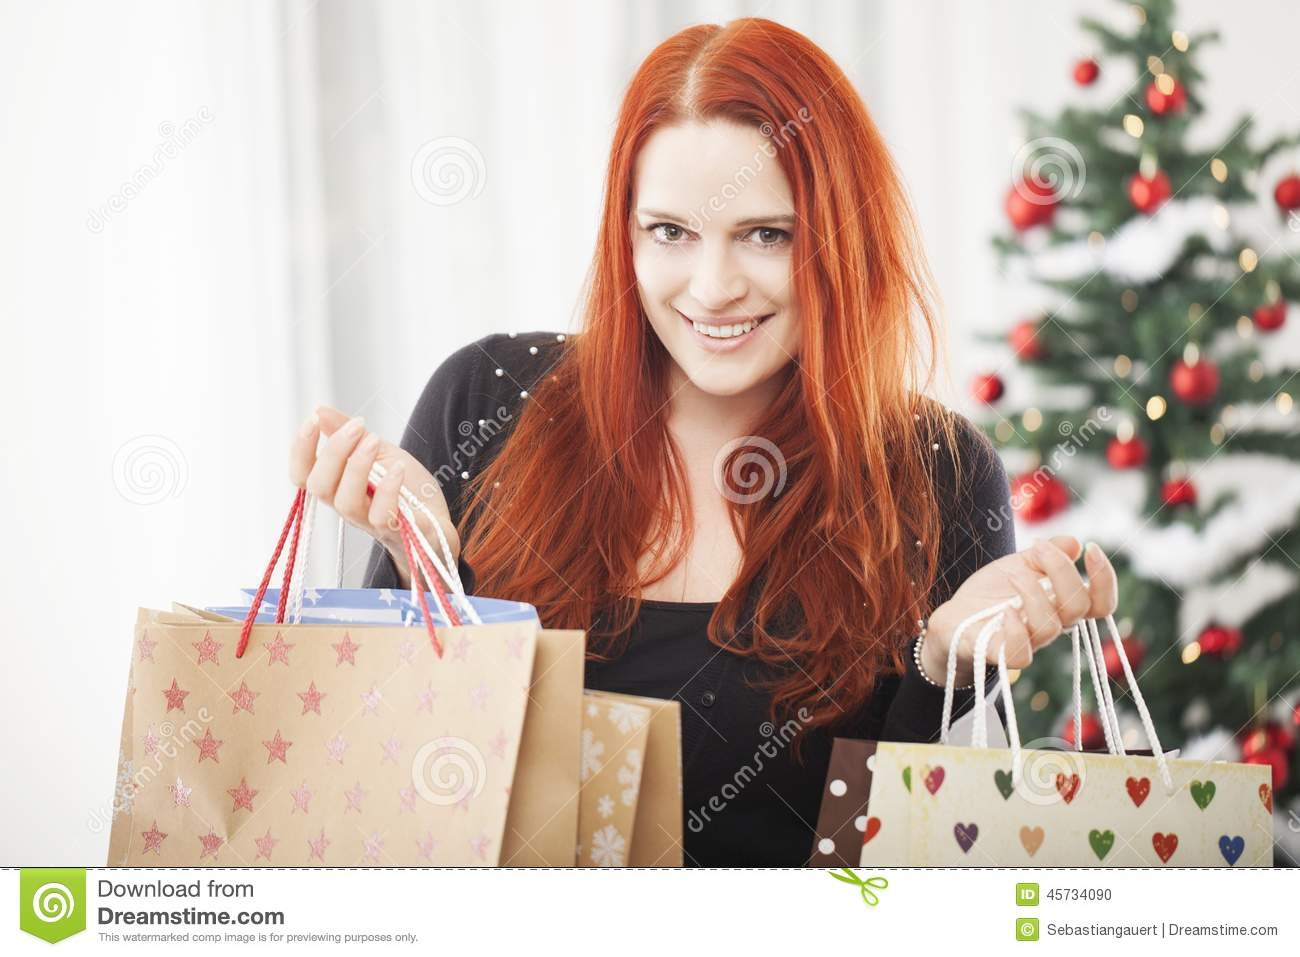 images How to Feel Happy when Christmas Is Over